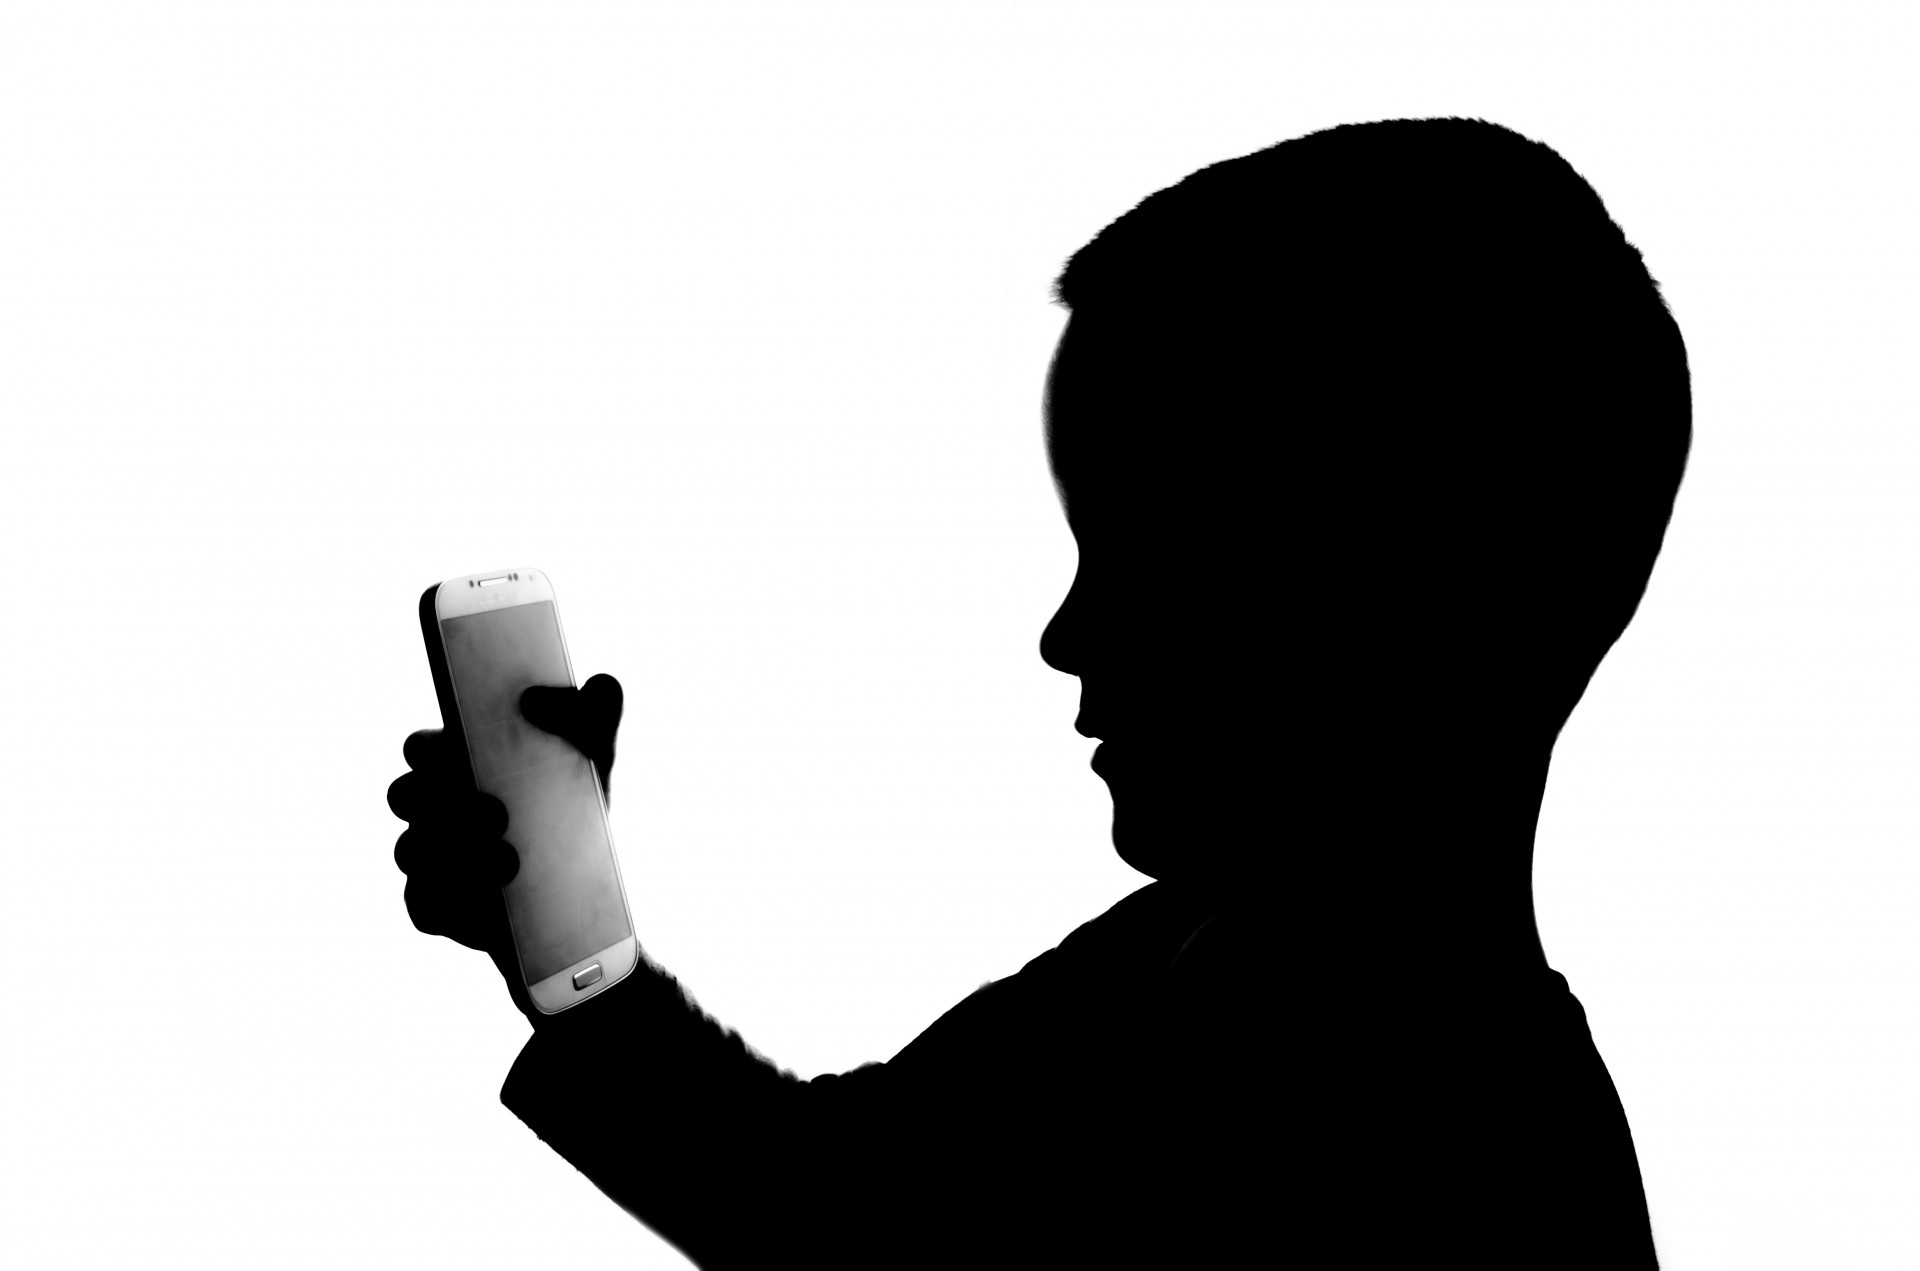 1920x1271 Silhouette Boy With Telephone Free Stock Photo